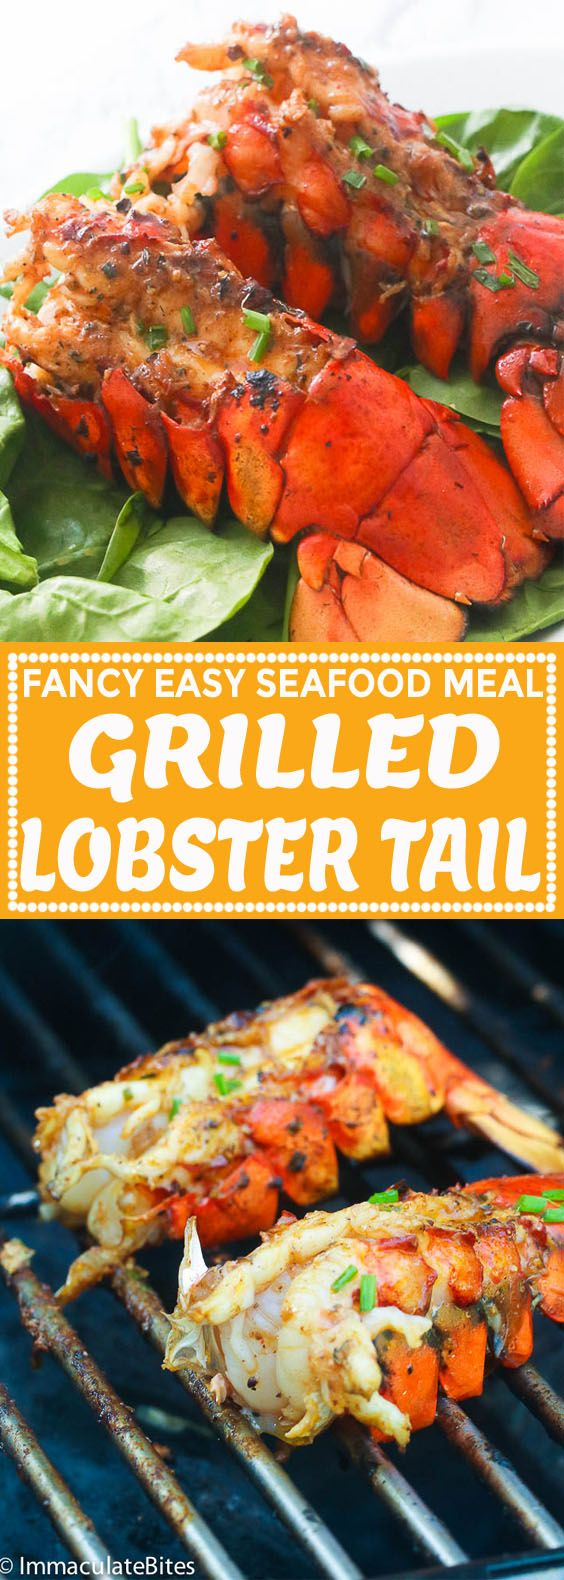 Grilled Lobster Tail - Immaculate Bites